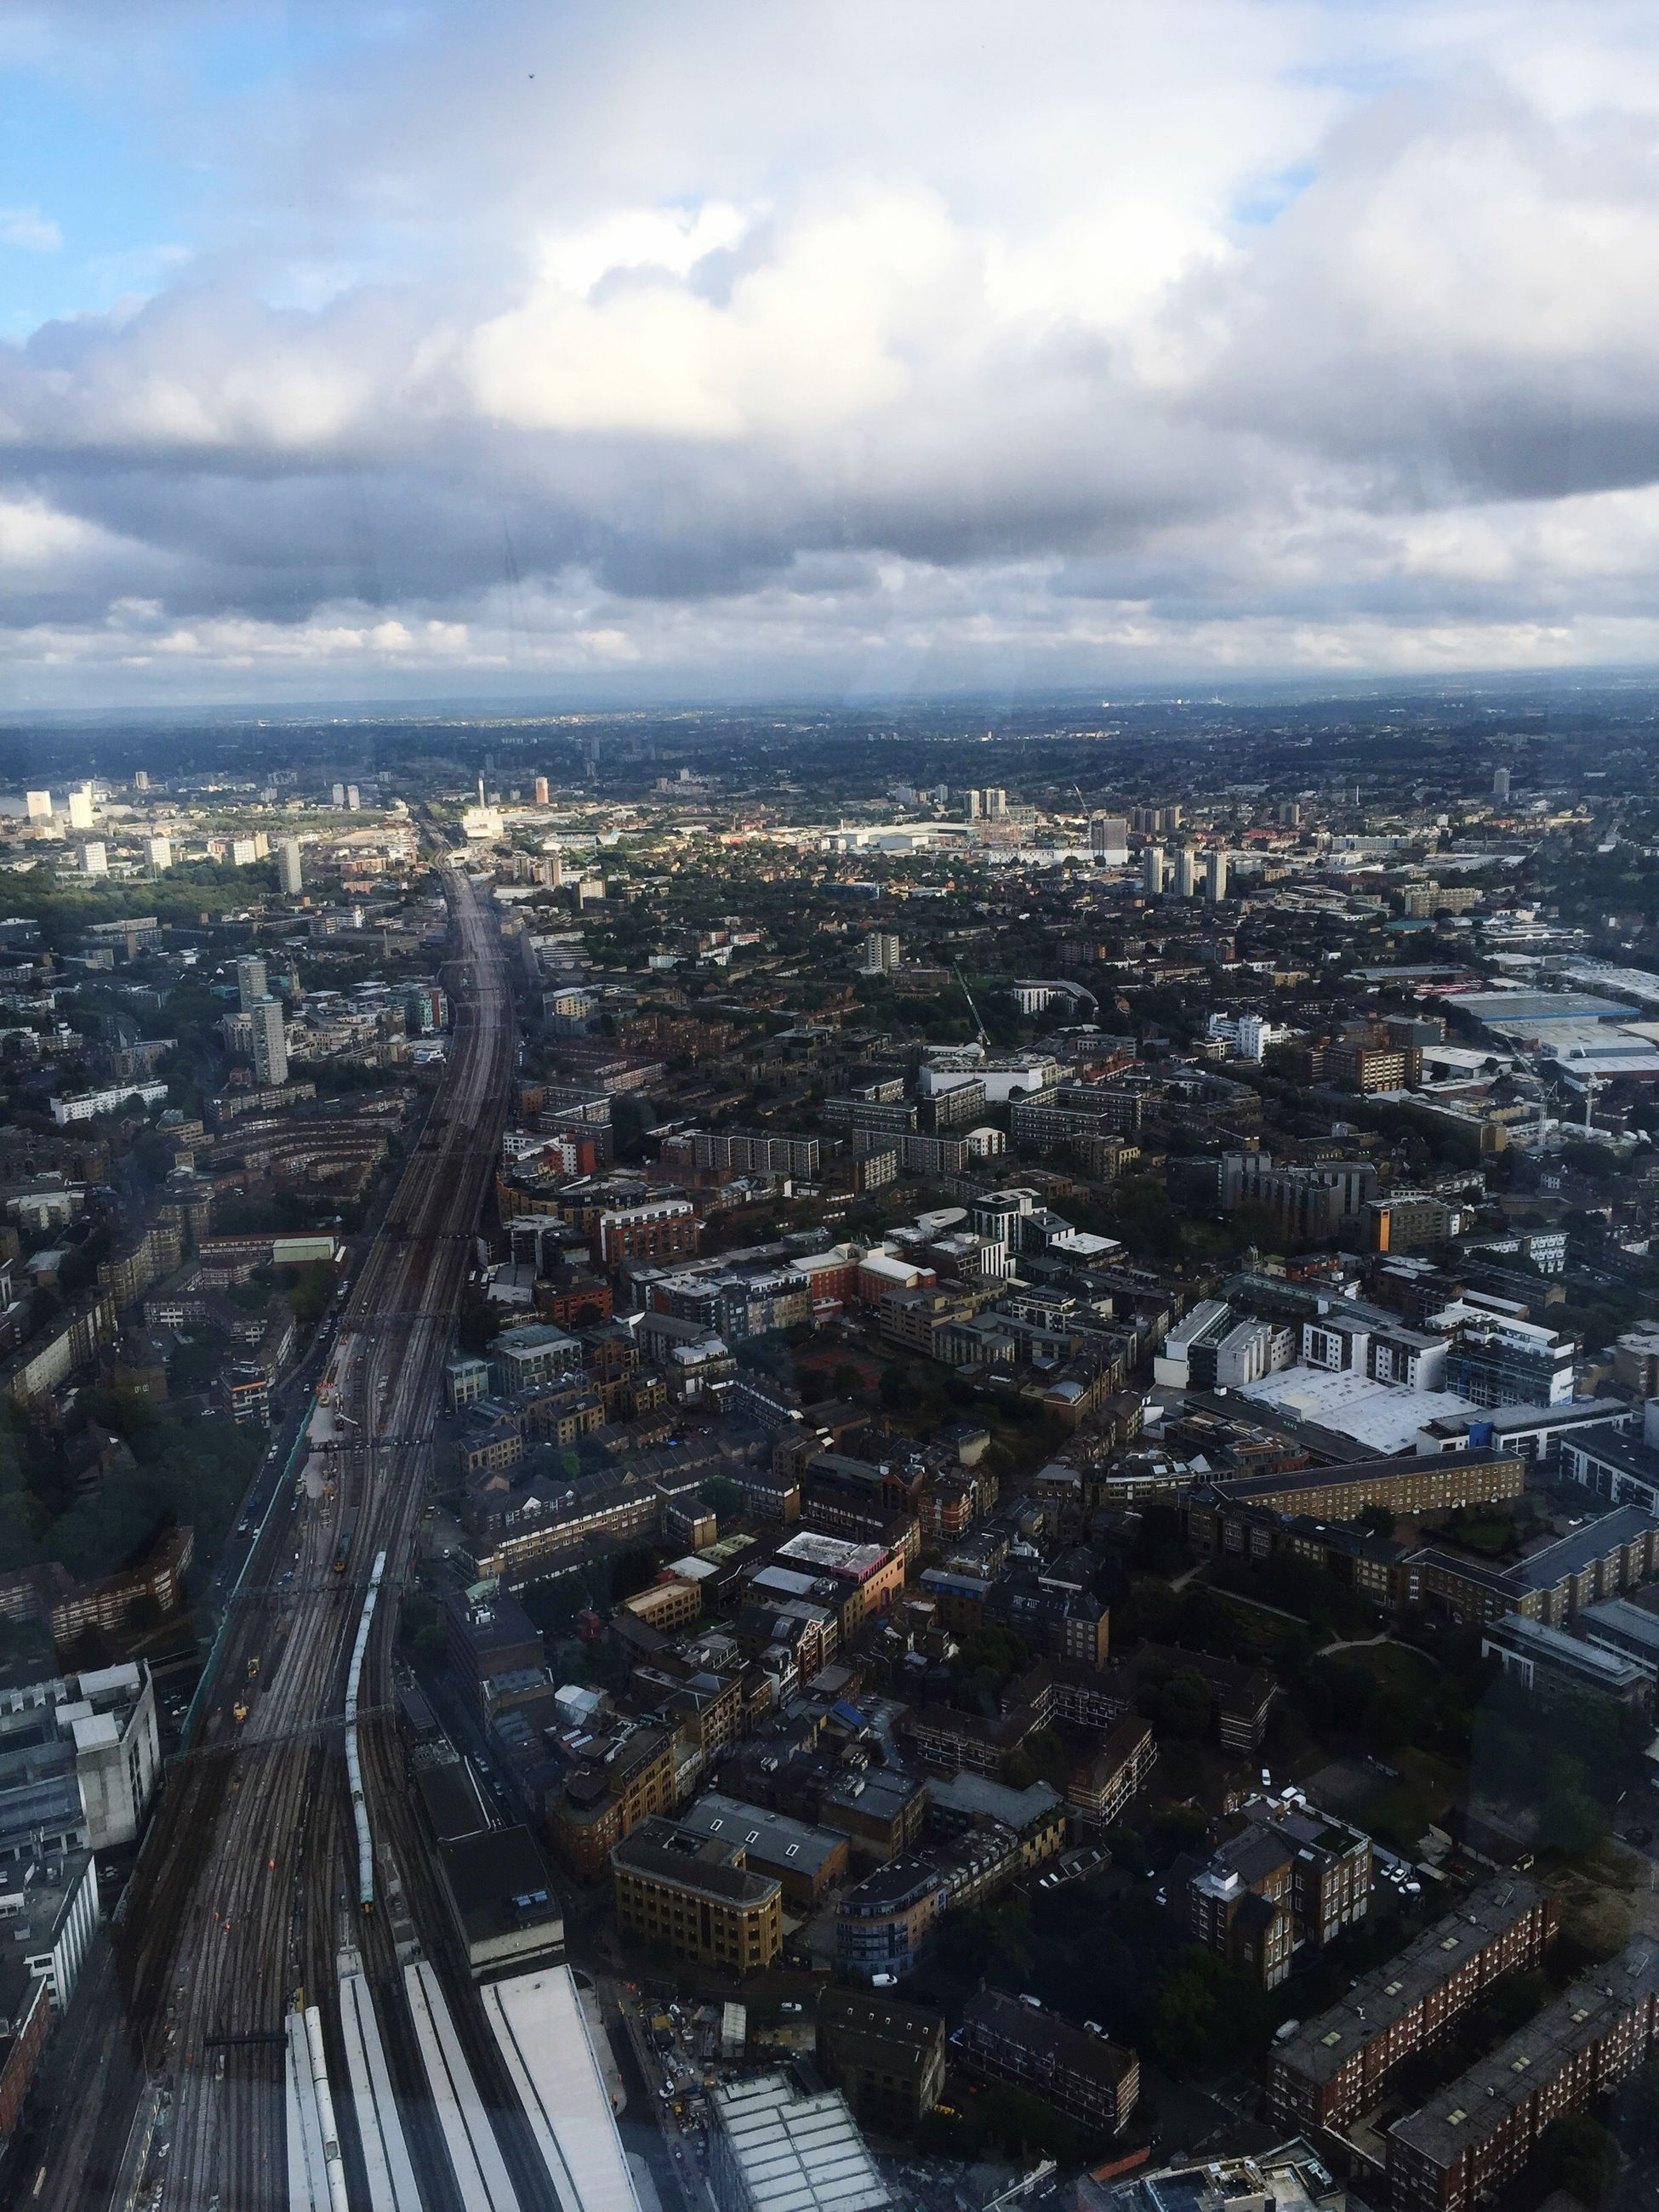 cityscape, city, architecture, built structure, building exterior, crowded, aerial view, wide shot, sky, wide, travel destinations, city life, cloud - sky, residential district, cloud, outdoors, day, cloudy, tourism, horizon over land, urban road, horizon, development, urban scene, office building